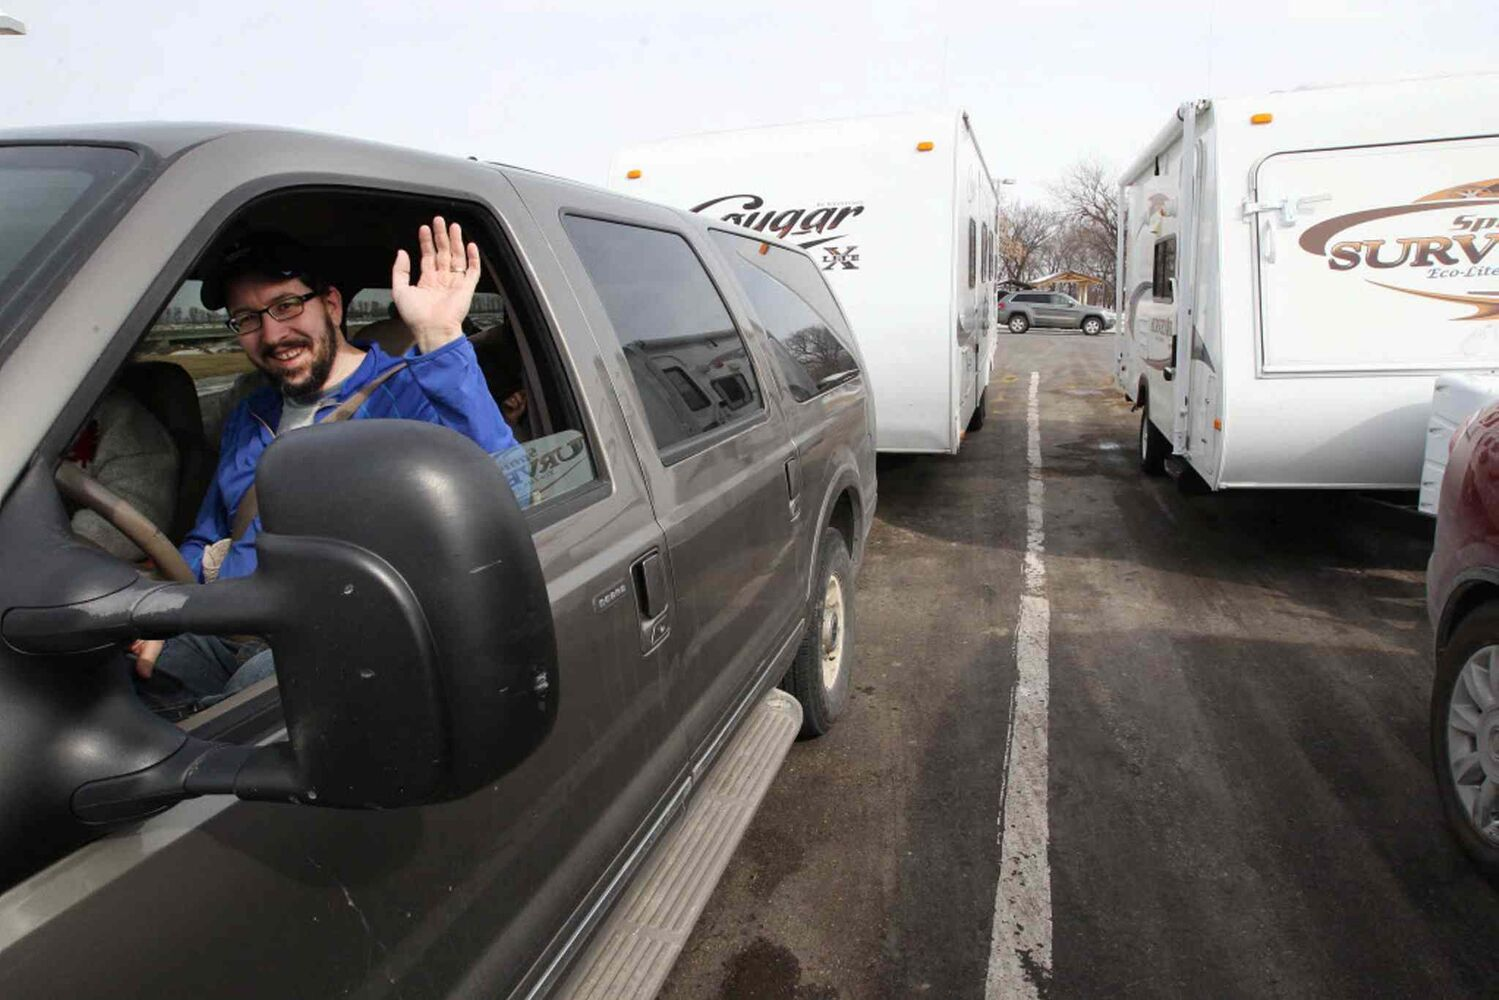 Winnipegger Patrick Bowman packed up his family to head to Gulf of Mexico. Joe and Randy met up with him just inside the USA/Canada border. (JOE BRYKSA / WINNIPEG FREE PRESS)